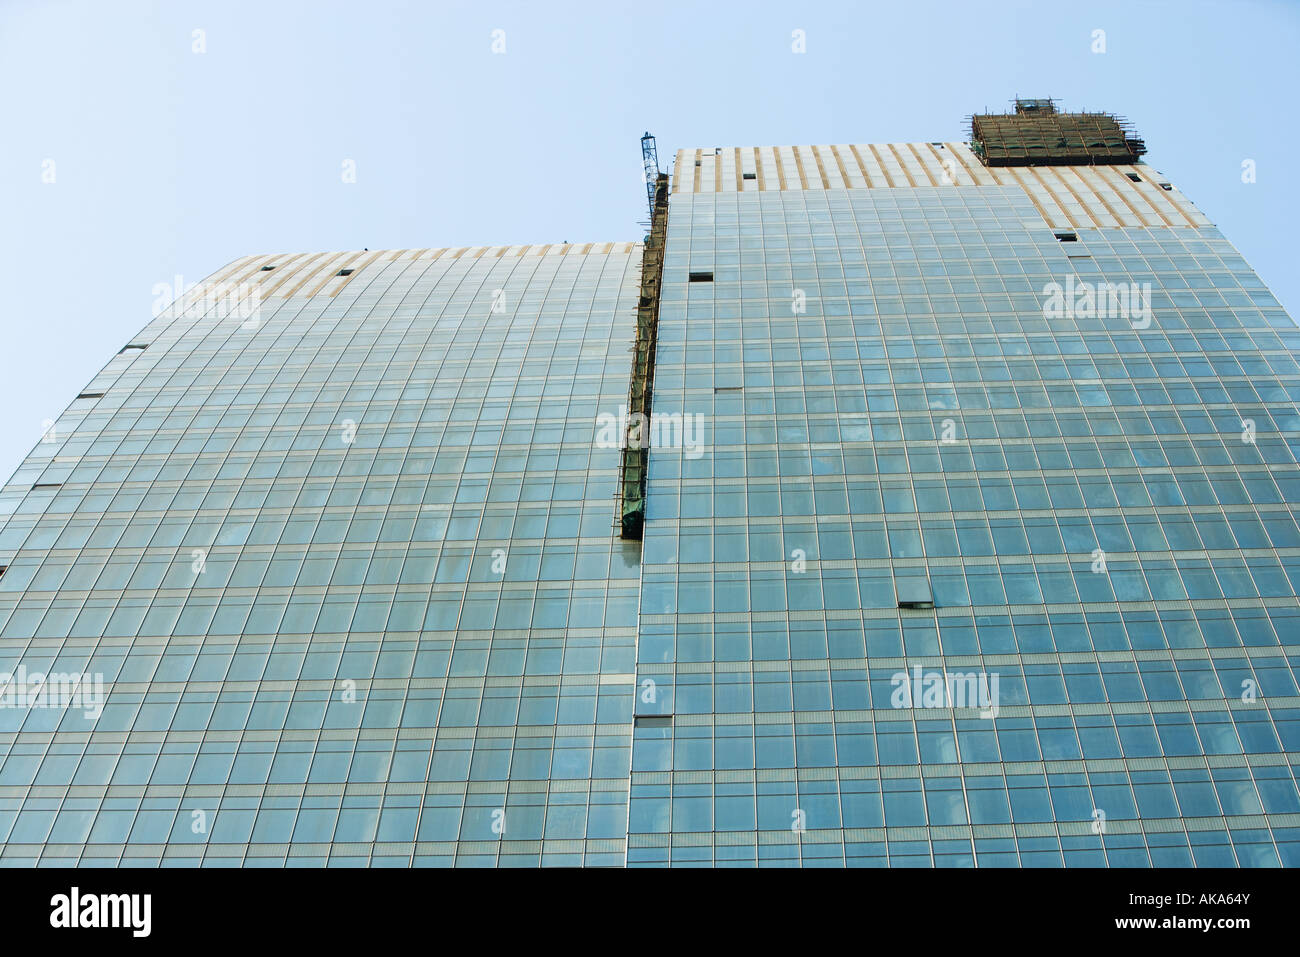 China, Guangdong Province, Guangzhou, office building under construction, low angle view - Stock Image